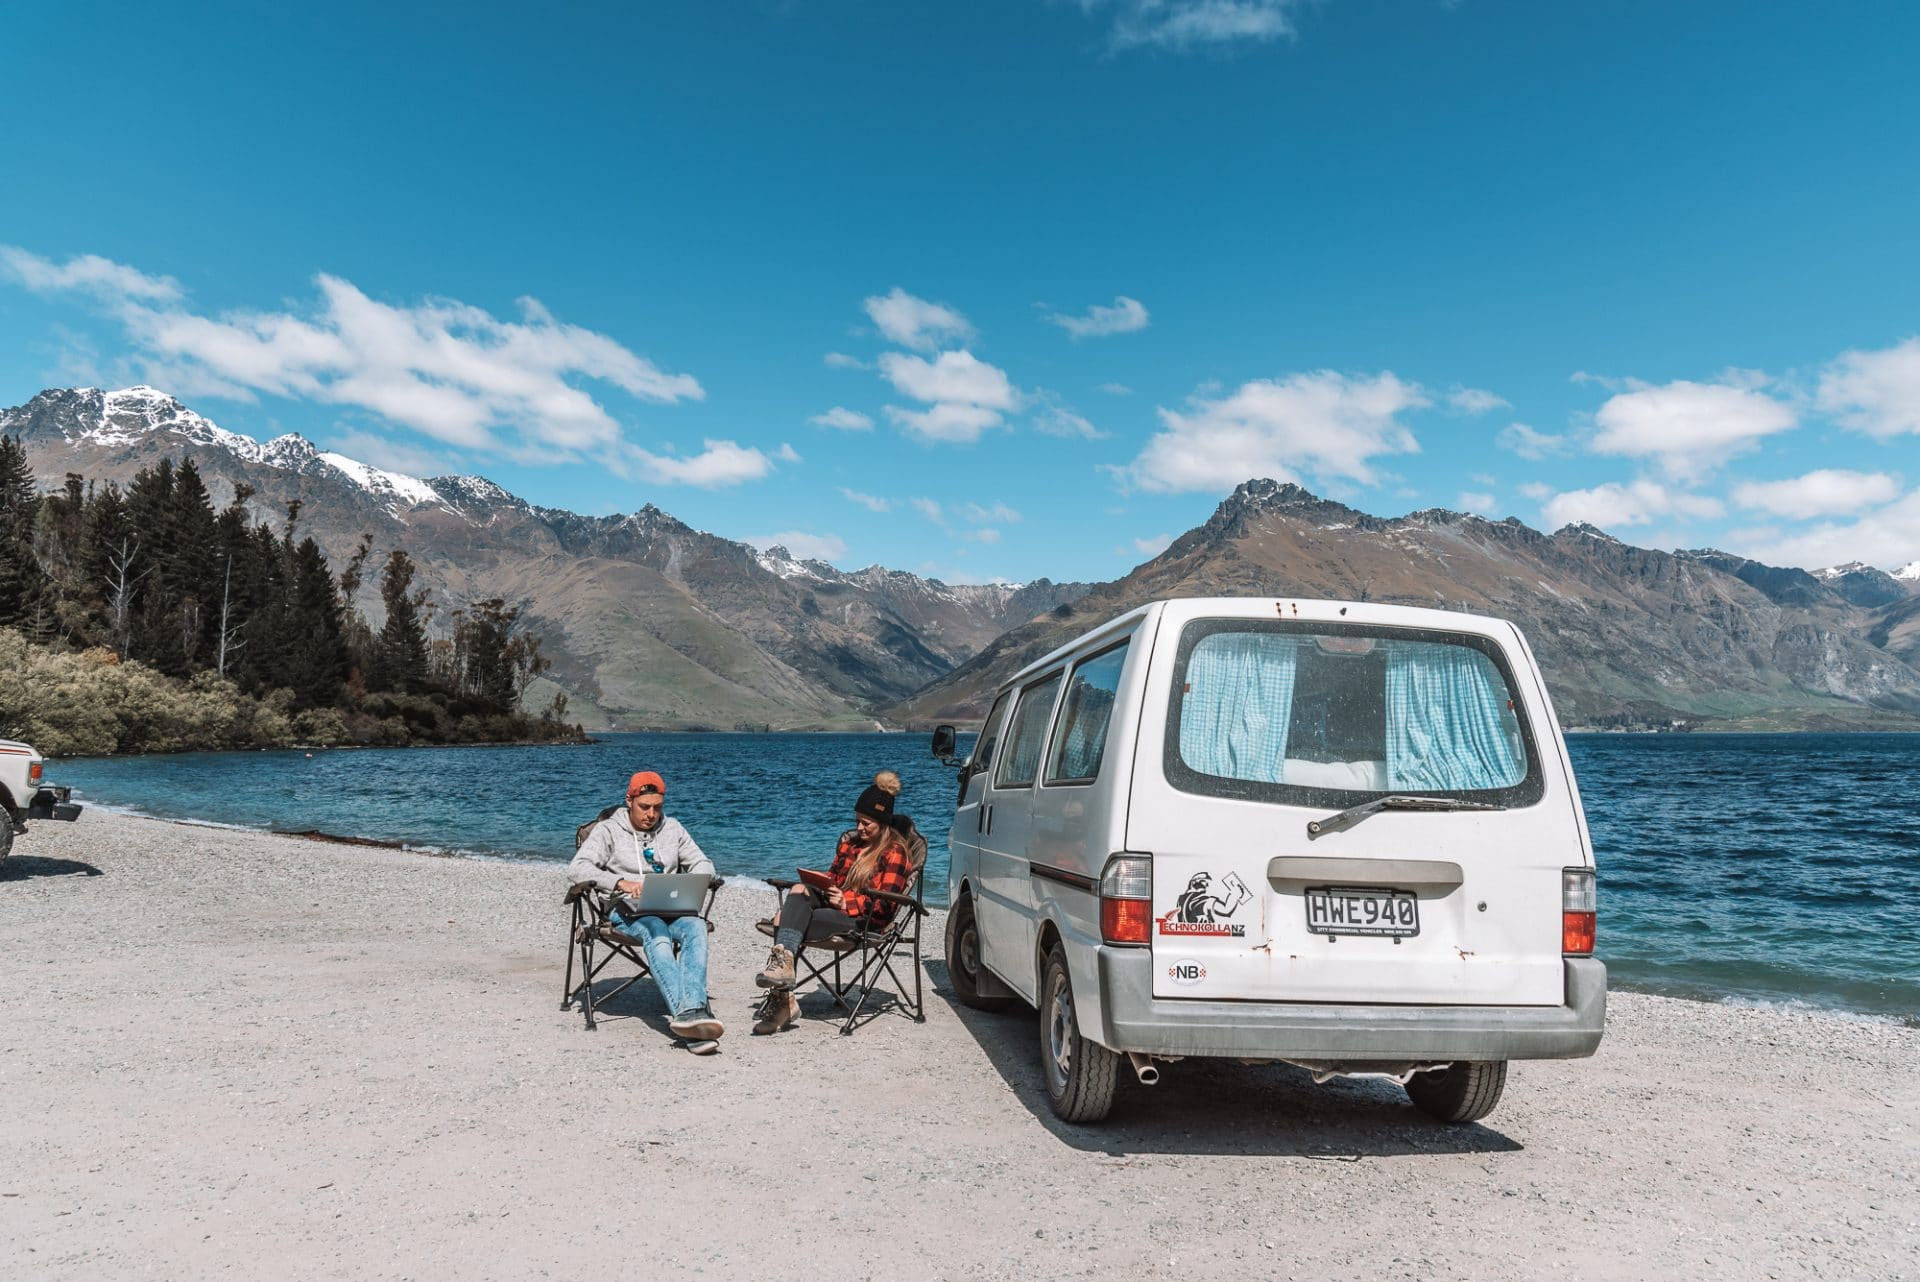 Bram and Manon working on a laptop and iPad besides their campervan next to a lake in Queenstown, New Zealand